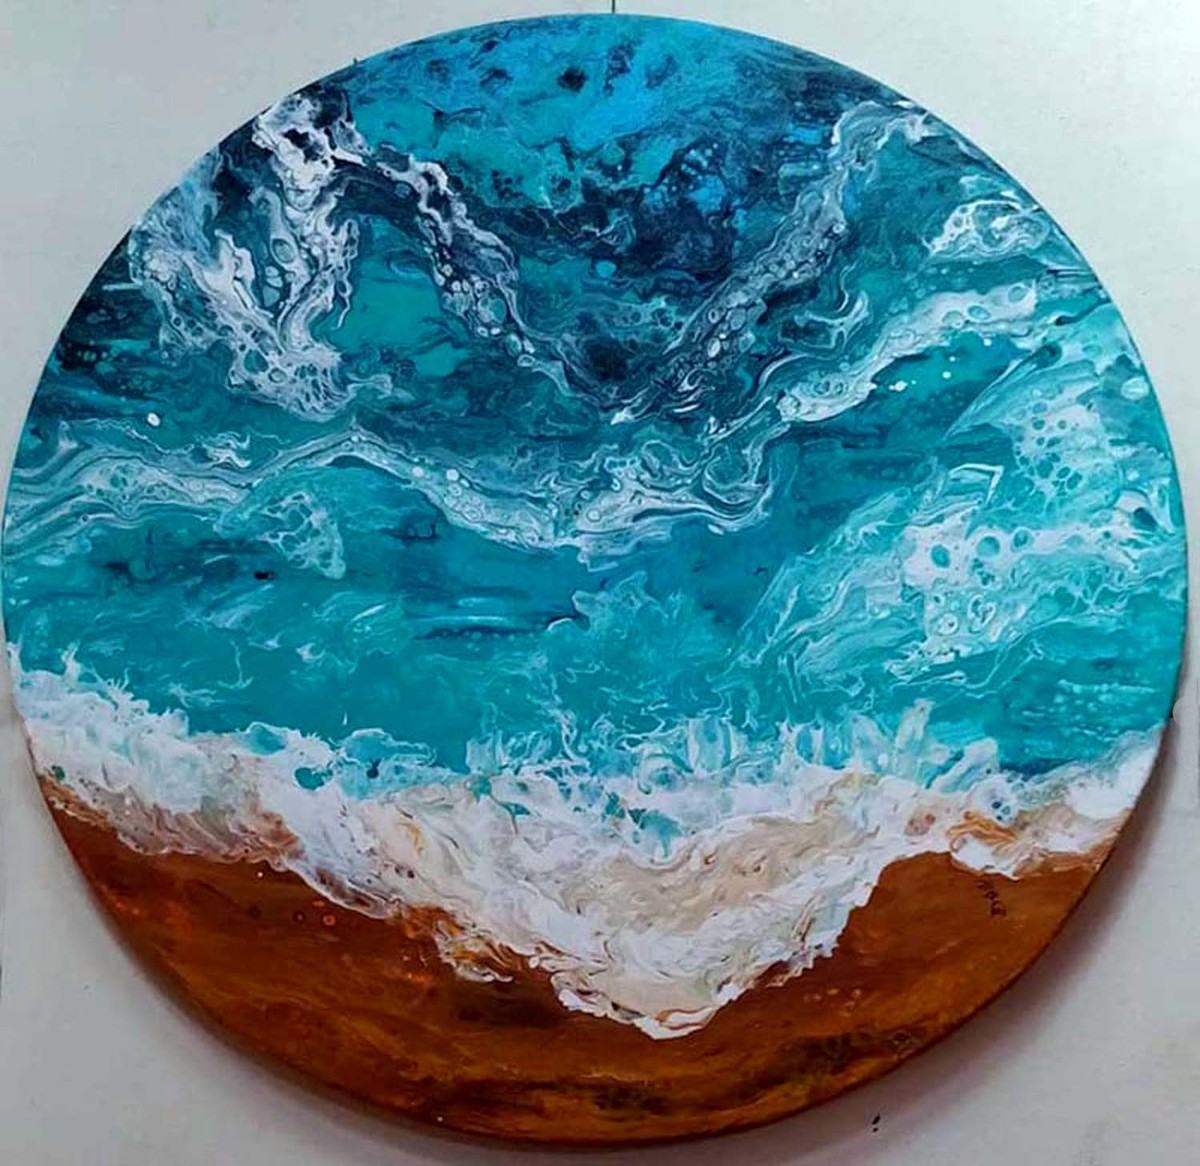 THE 0CEAN by kakali sanyal, Abstract Painting, Acrylic on Canvas, Cyan color